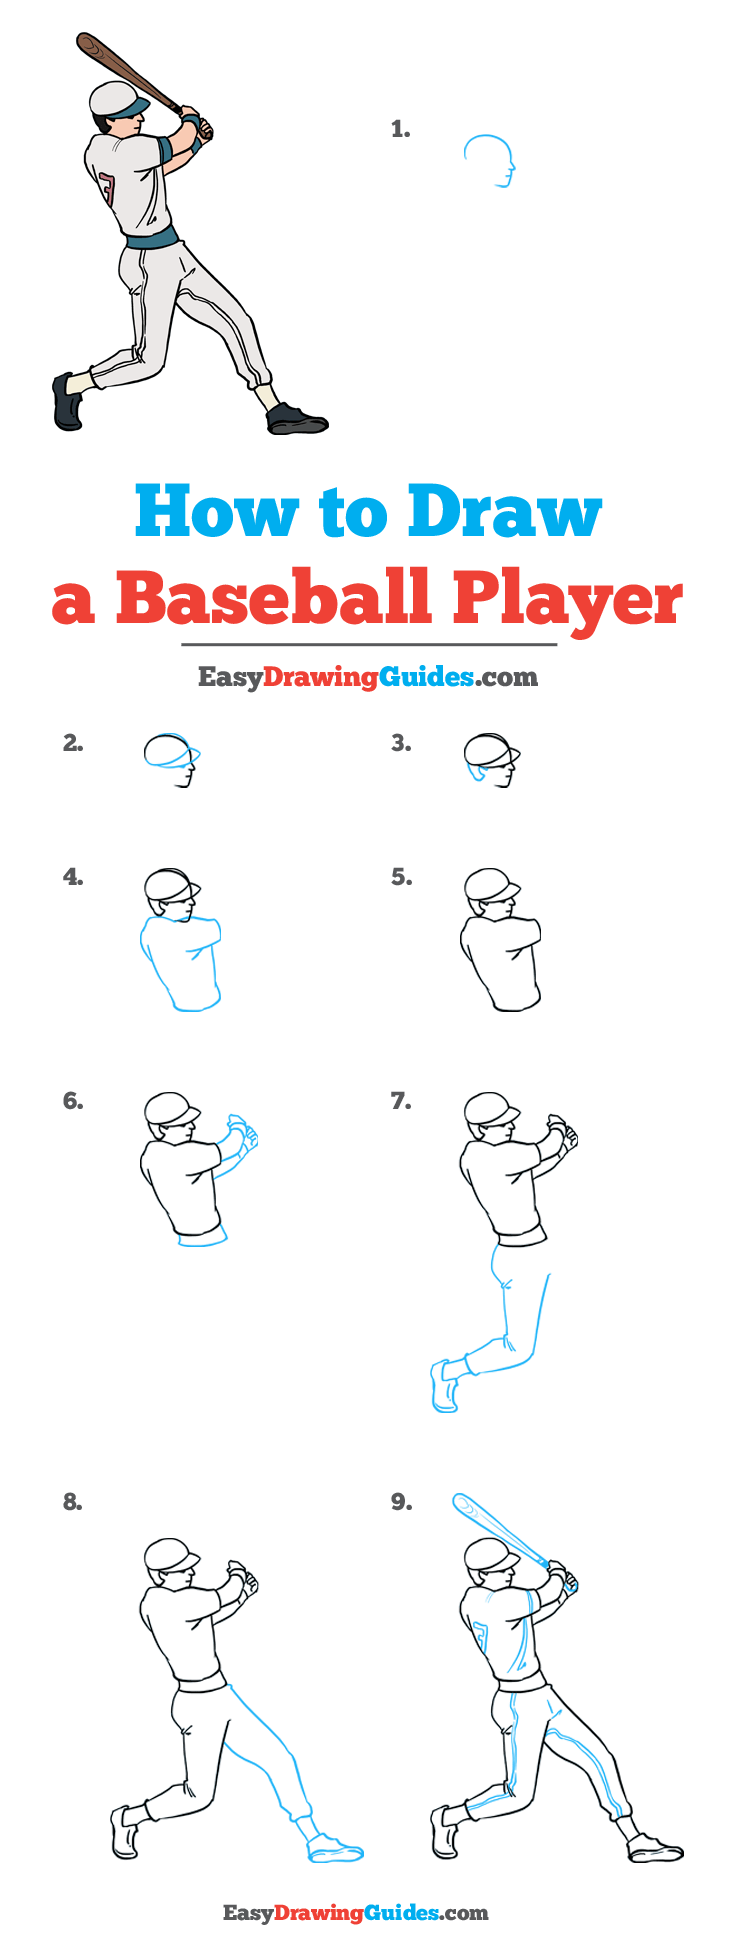 How to Draw a Baseball Player: Step by Step Tutorial